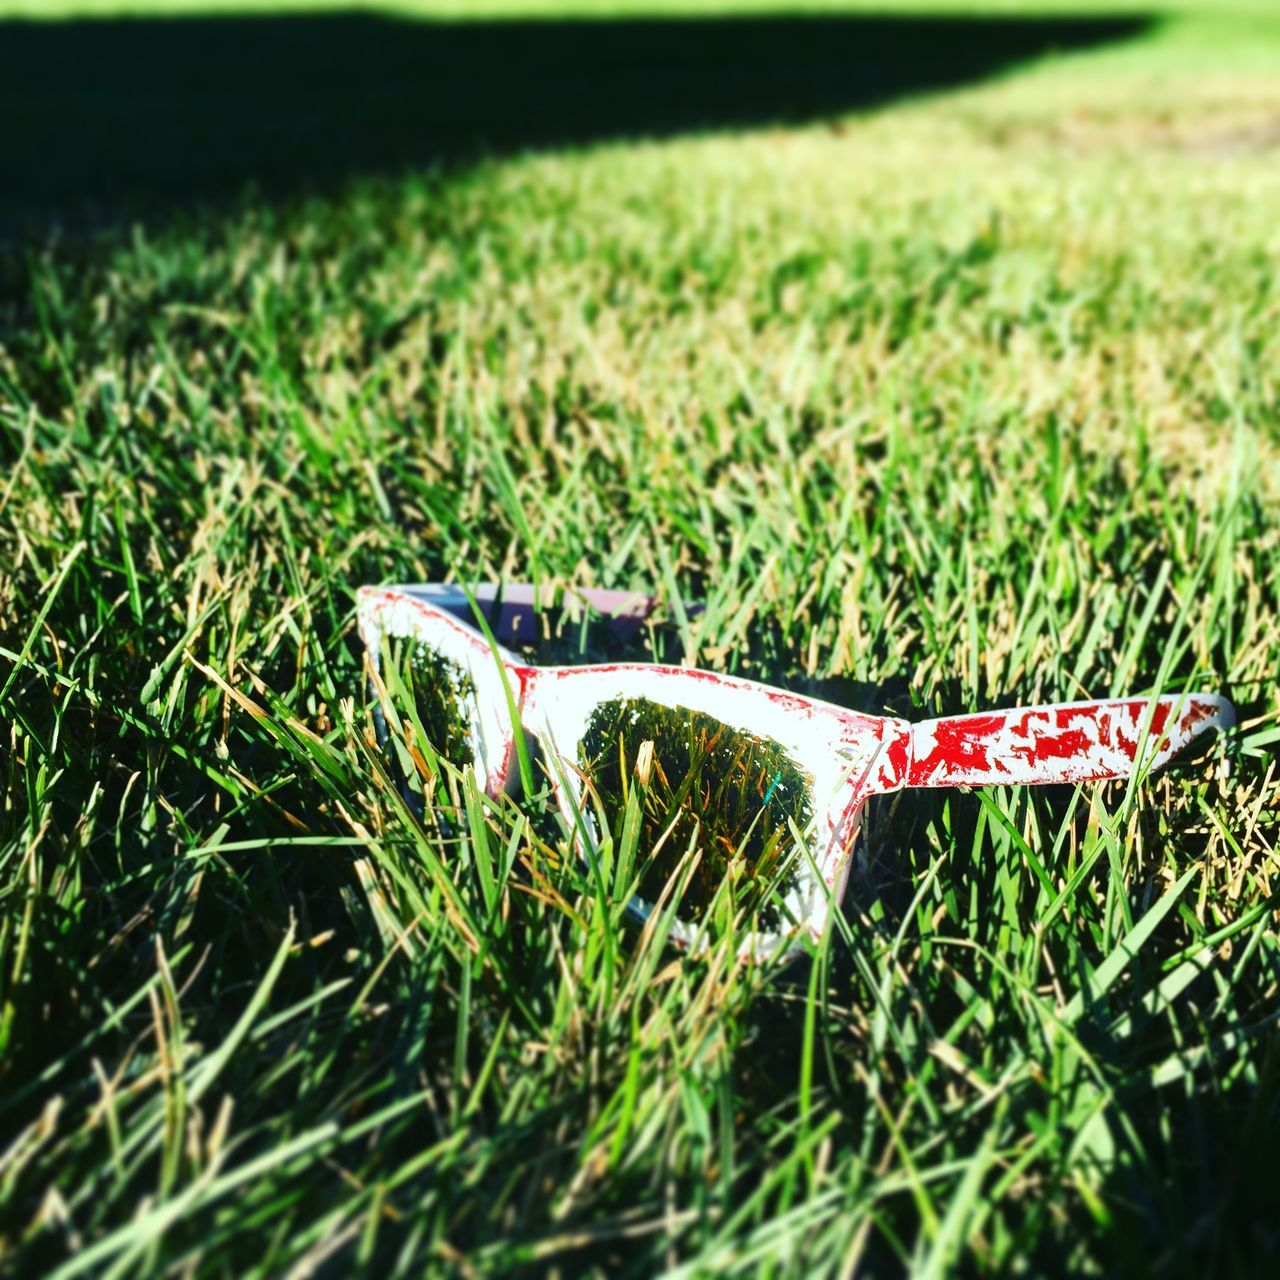 Abandoned Sunglasses On Grassy Field